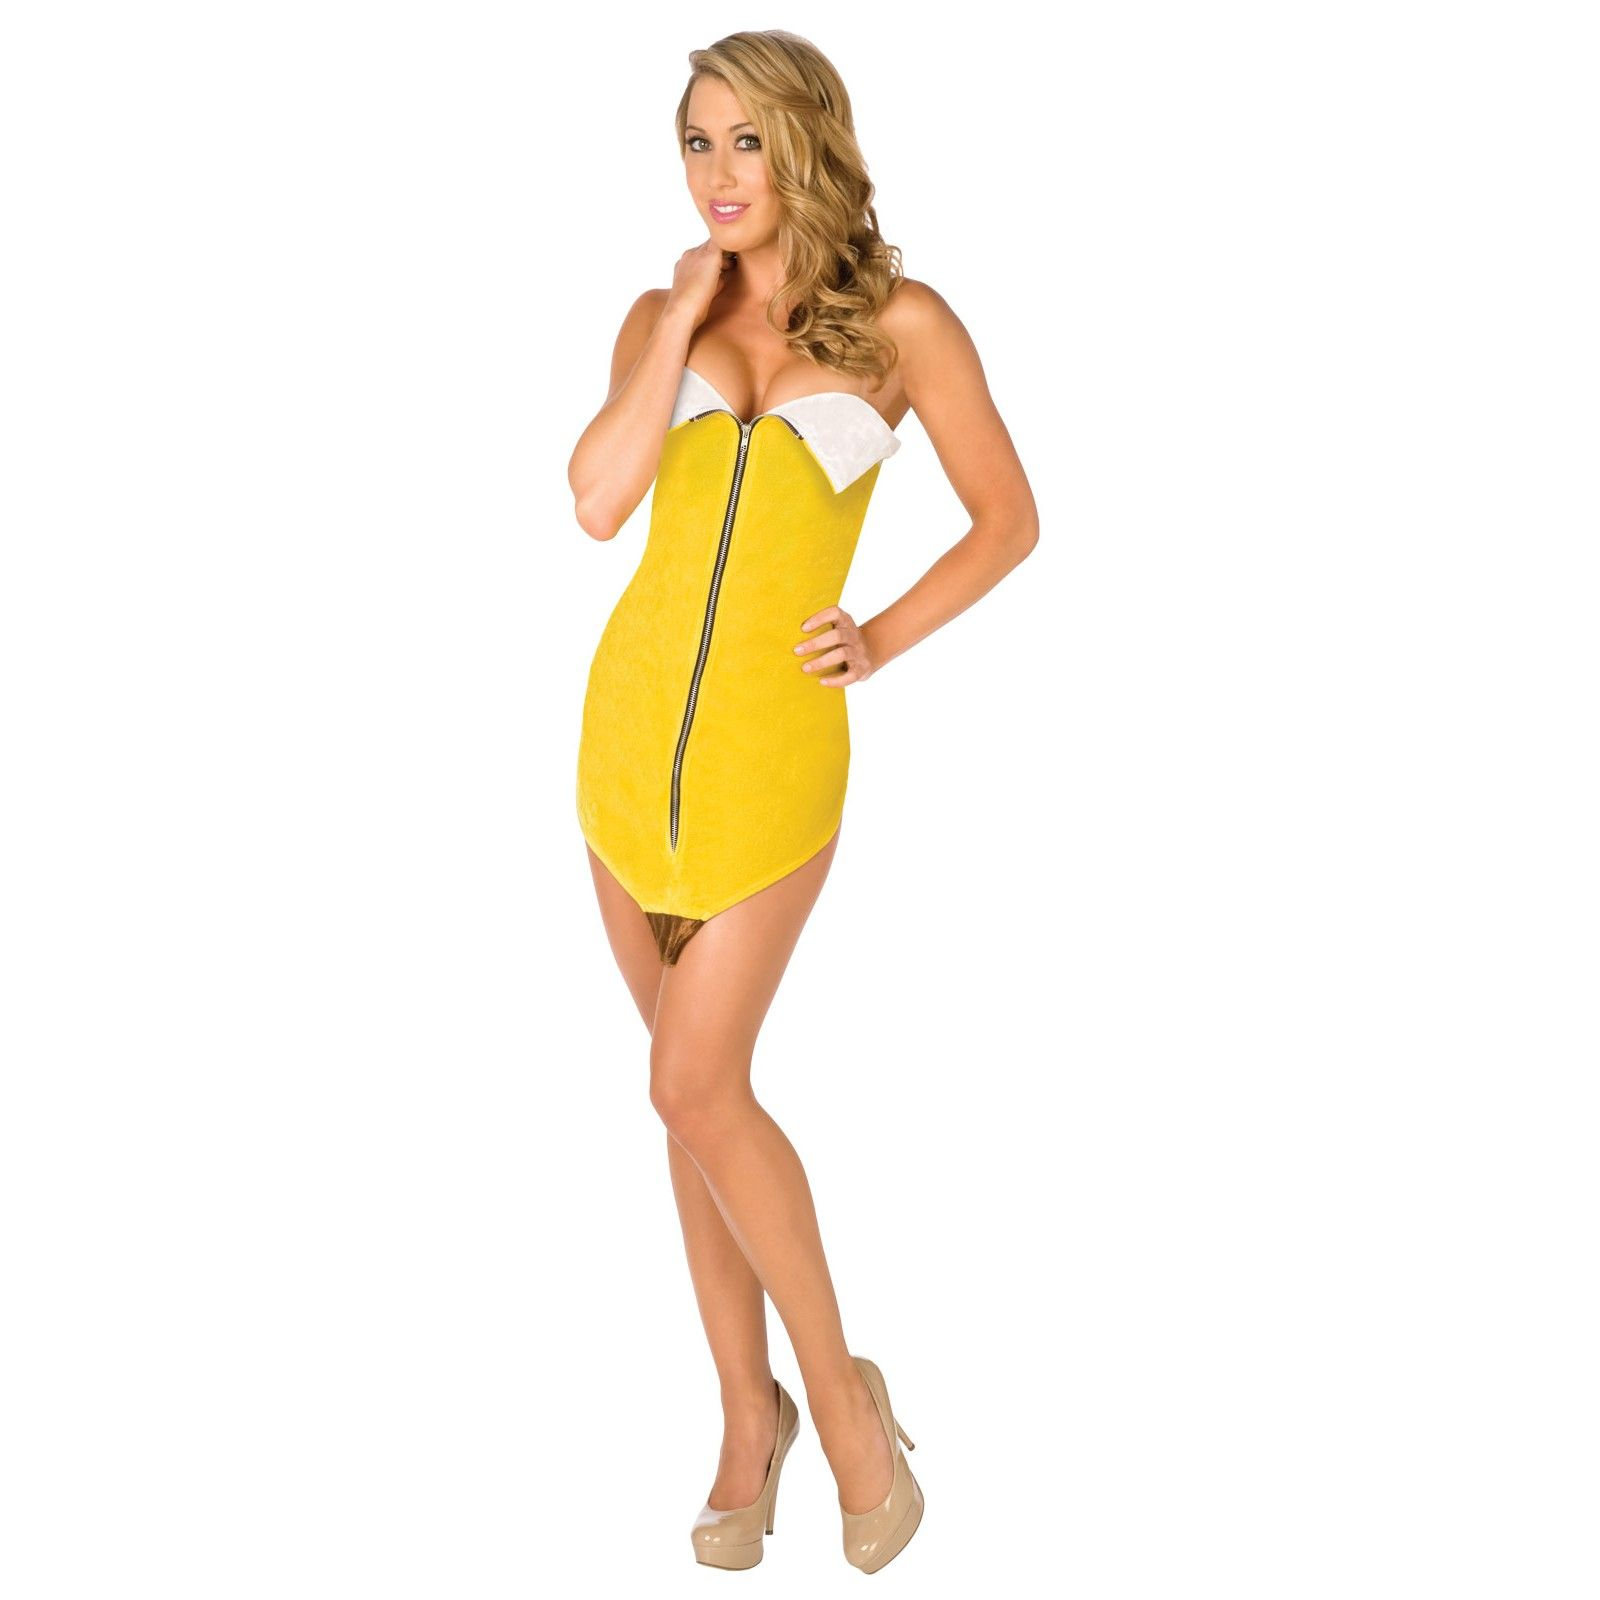 banana deluxe adult costume - Banana Costume Halloween